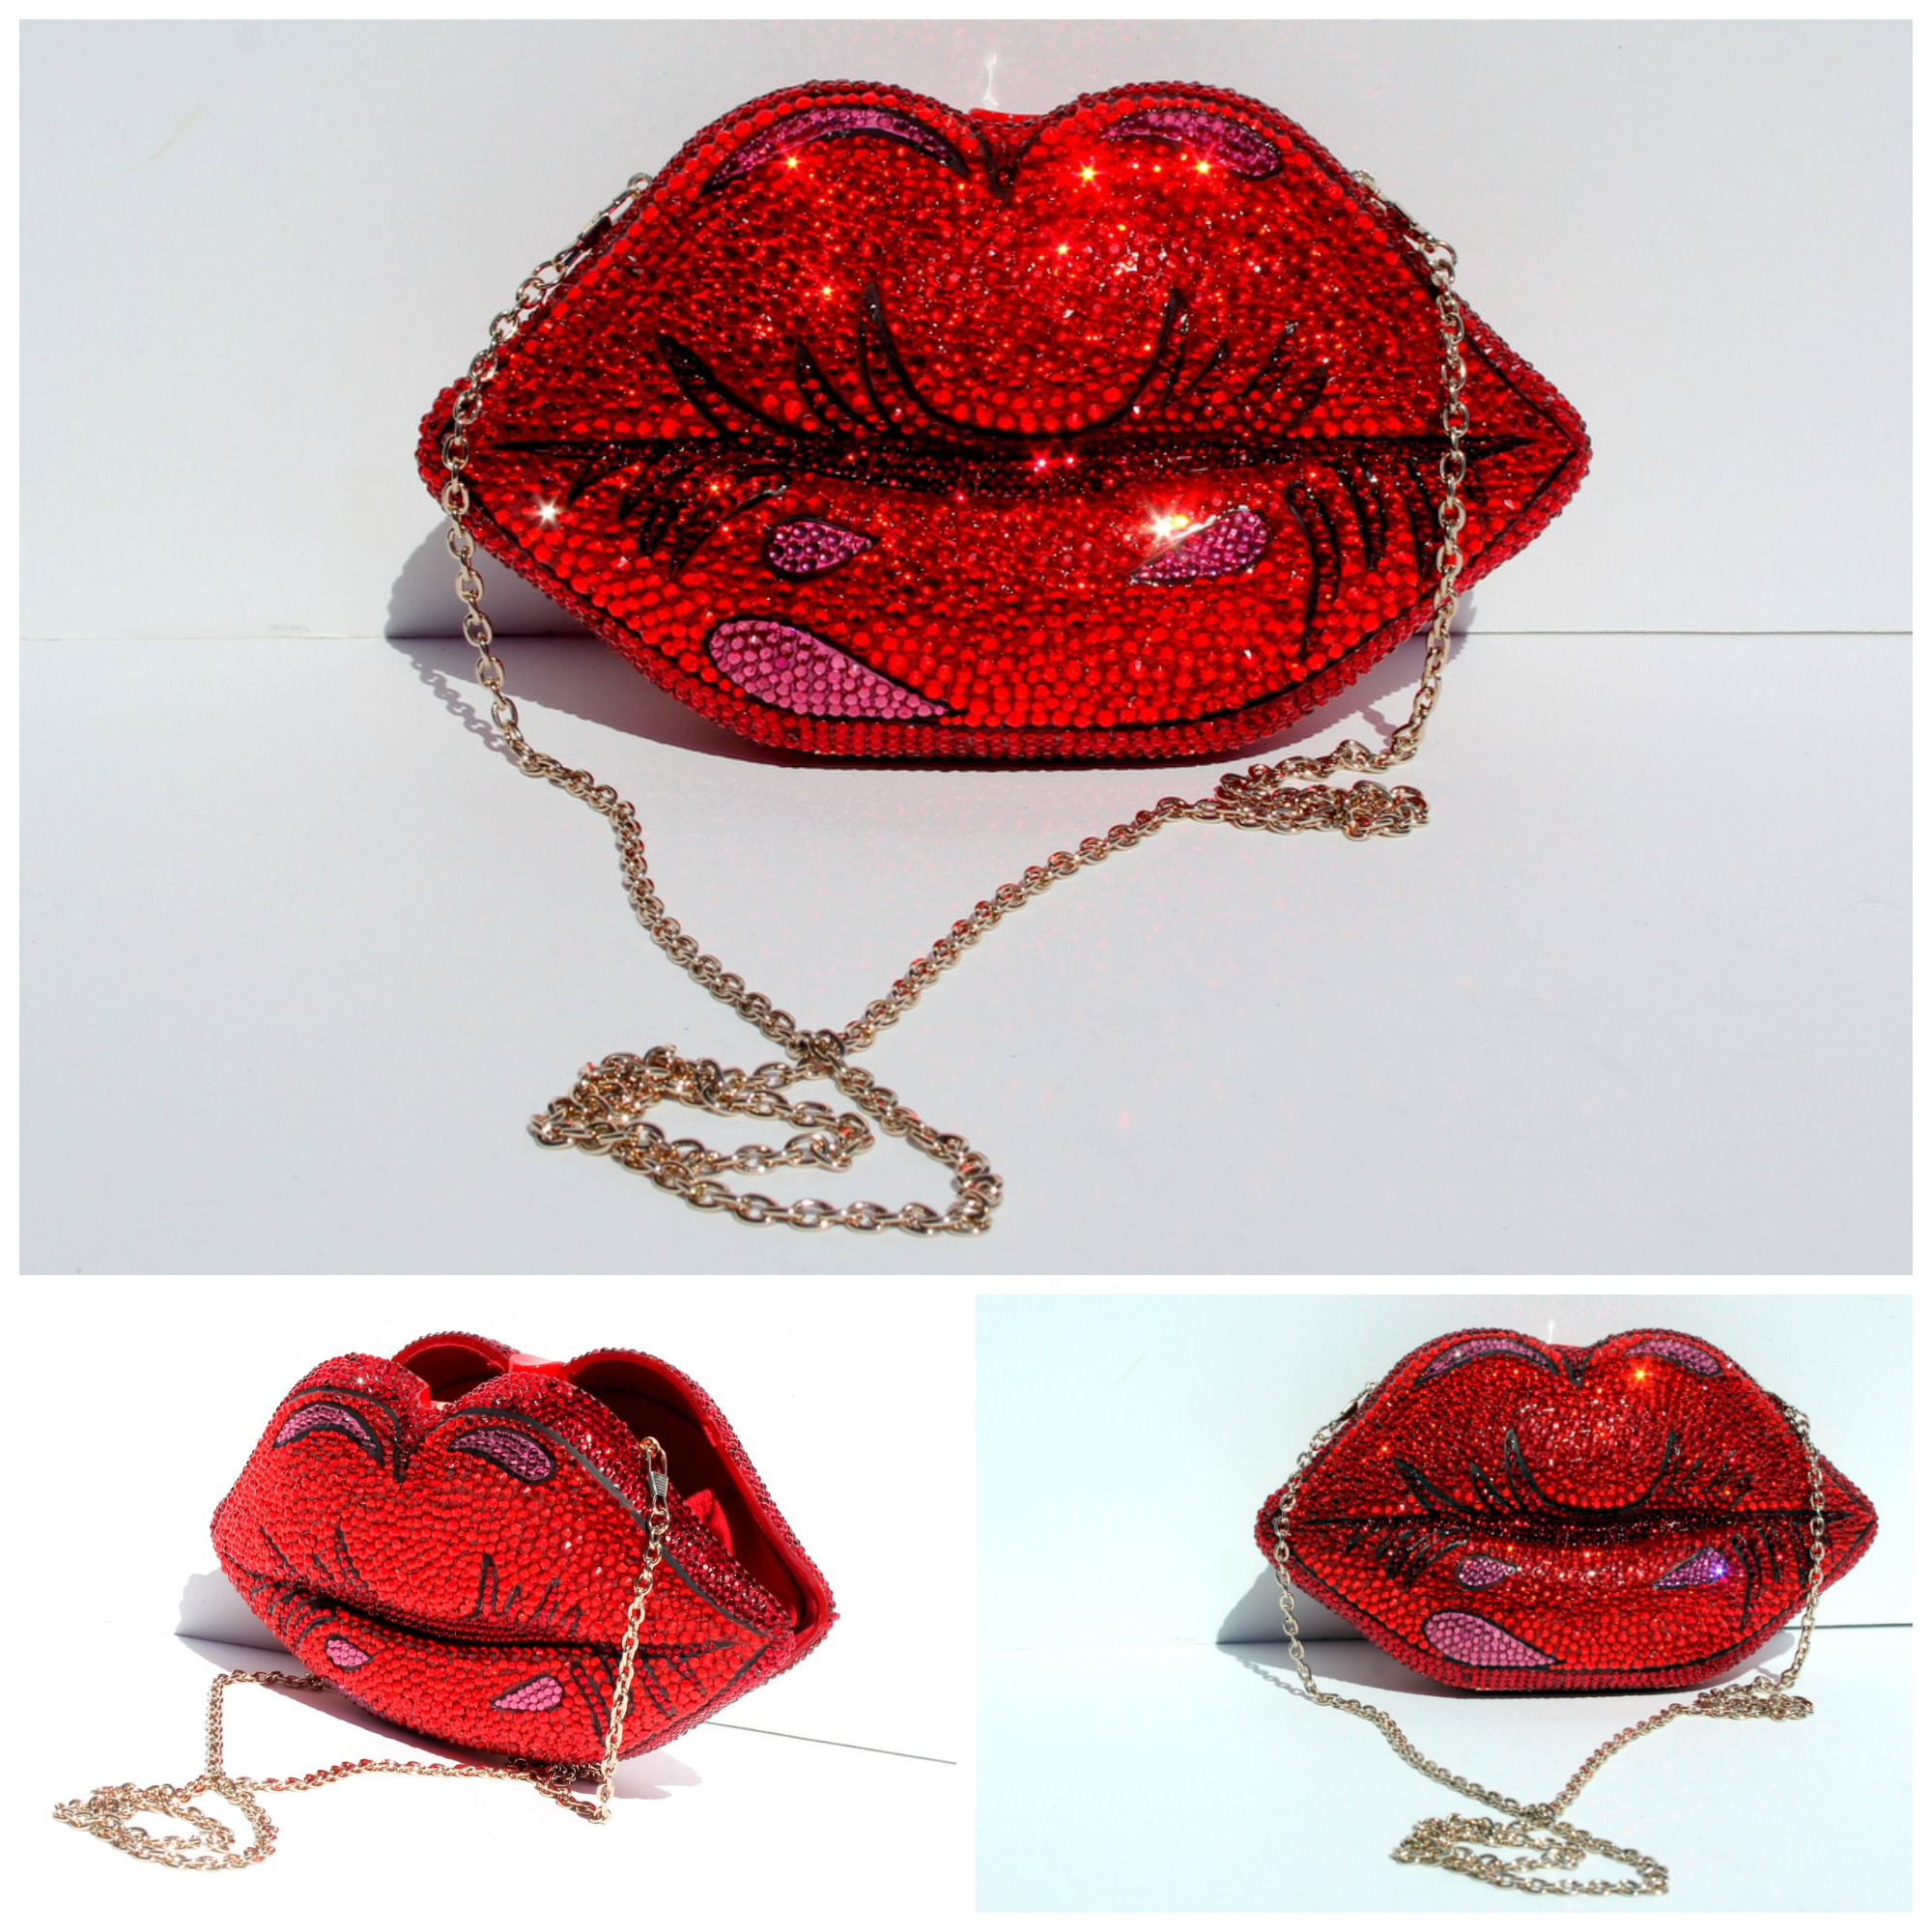 Crystal Handbag - Red Lips Crystal Clutch Purse (44112444 Wicked Addiction) photo